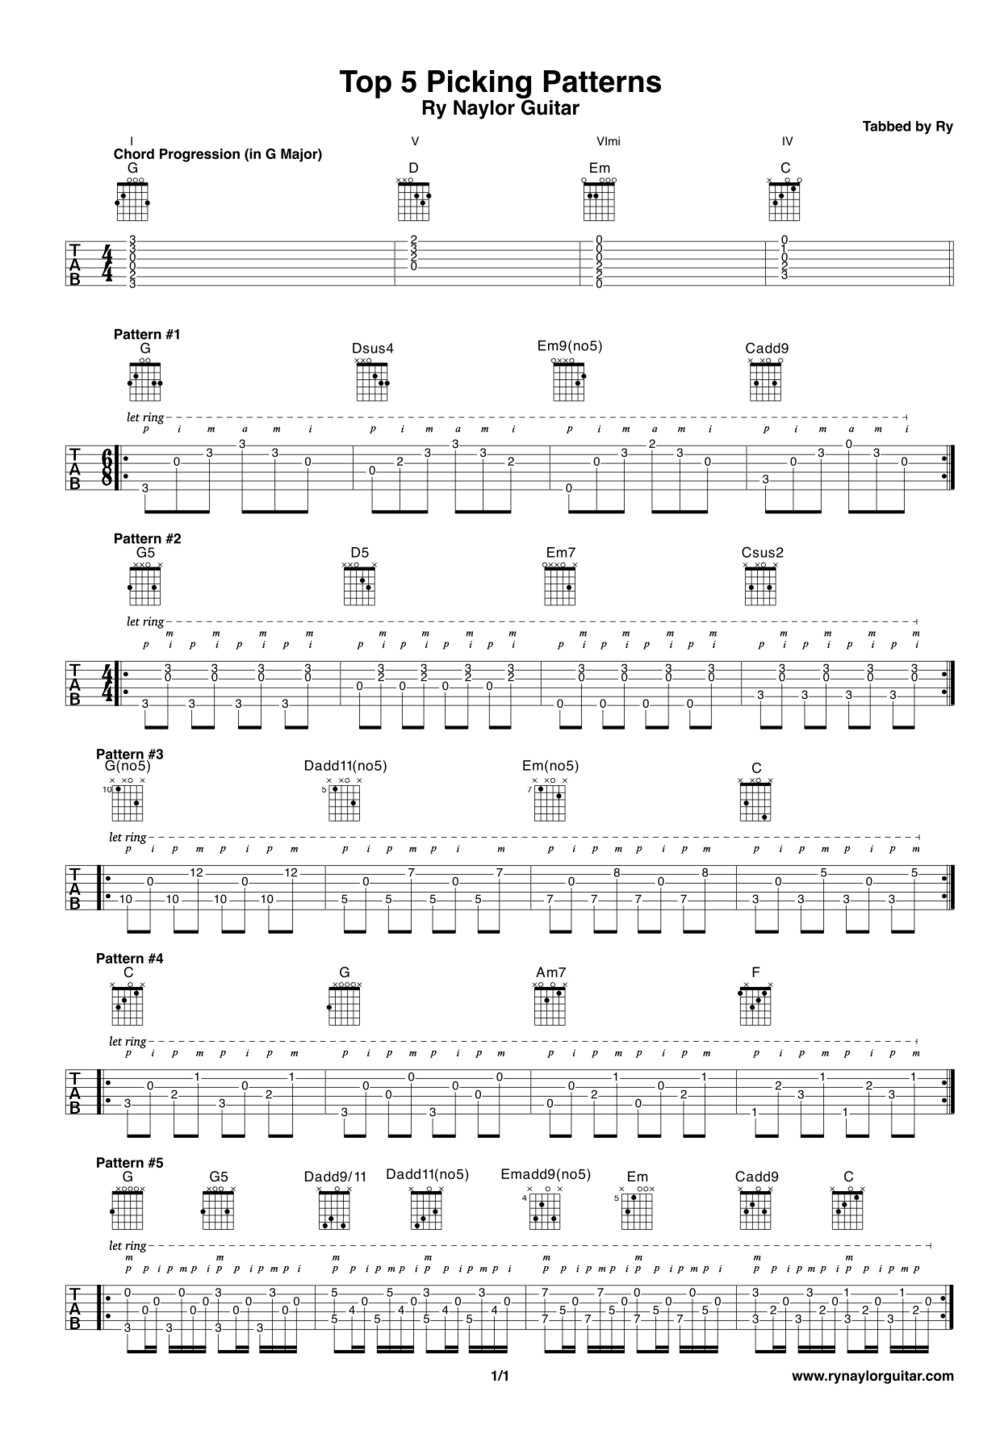 Rys top 5 fingerstyle picking patterns ry naylor guitar free an error occurred hexwebz Image collections